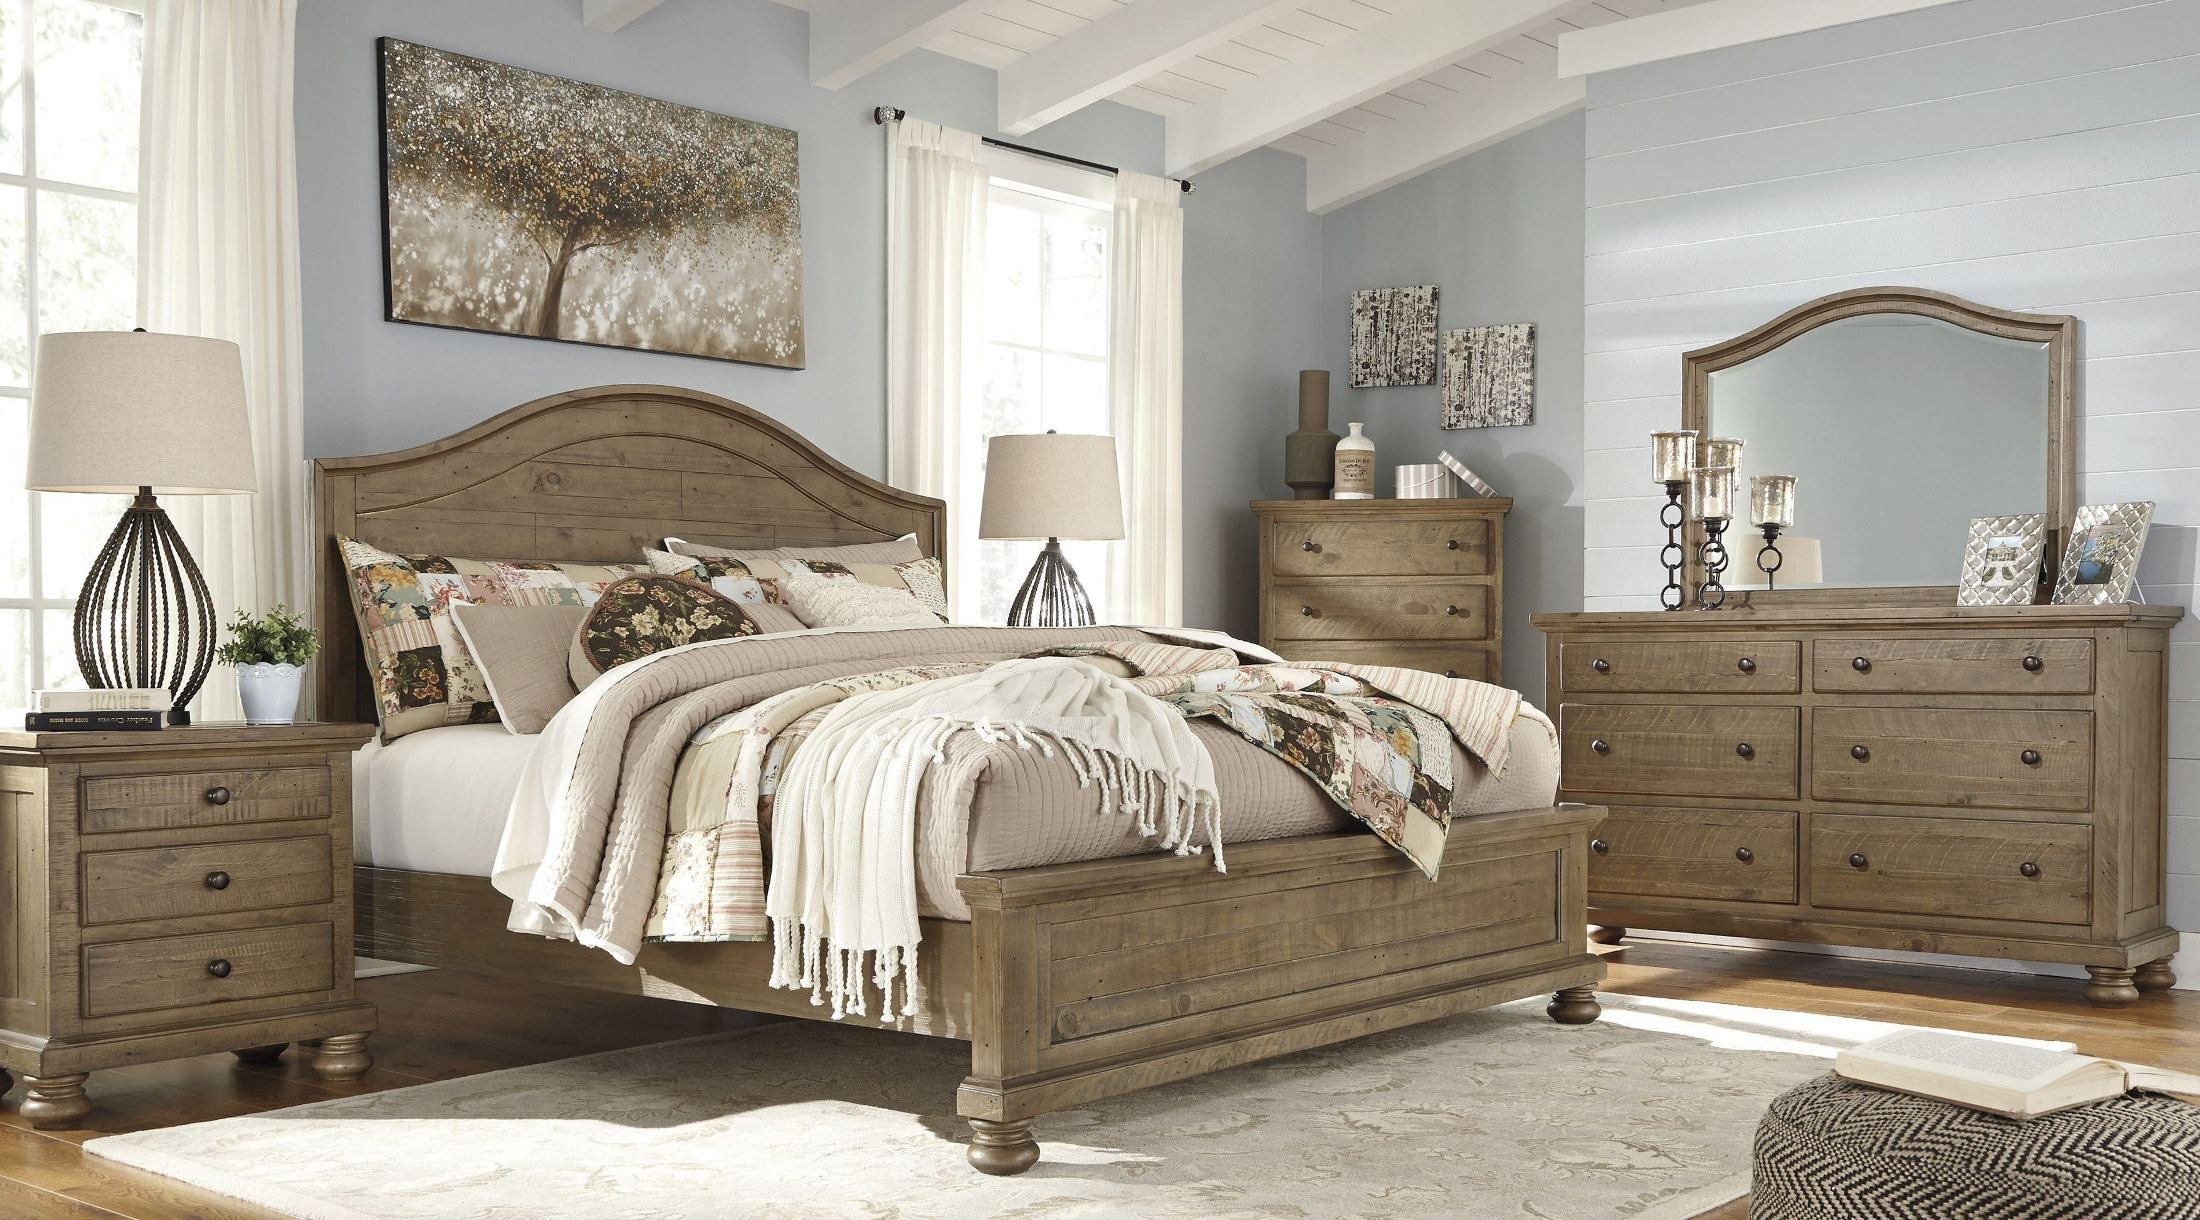 Trishley light brown panel bedroom set b659 57 54 96 ashley - Ashley furniture bedroom packages ...